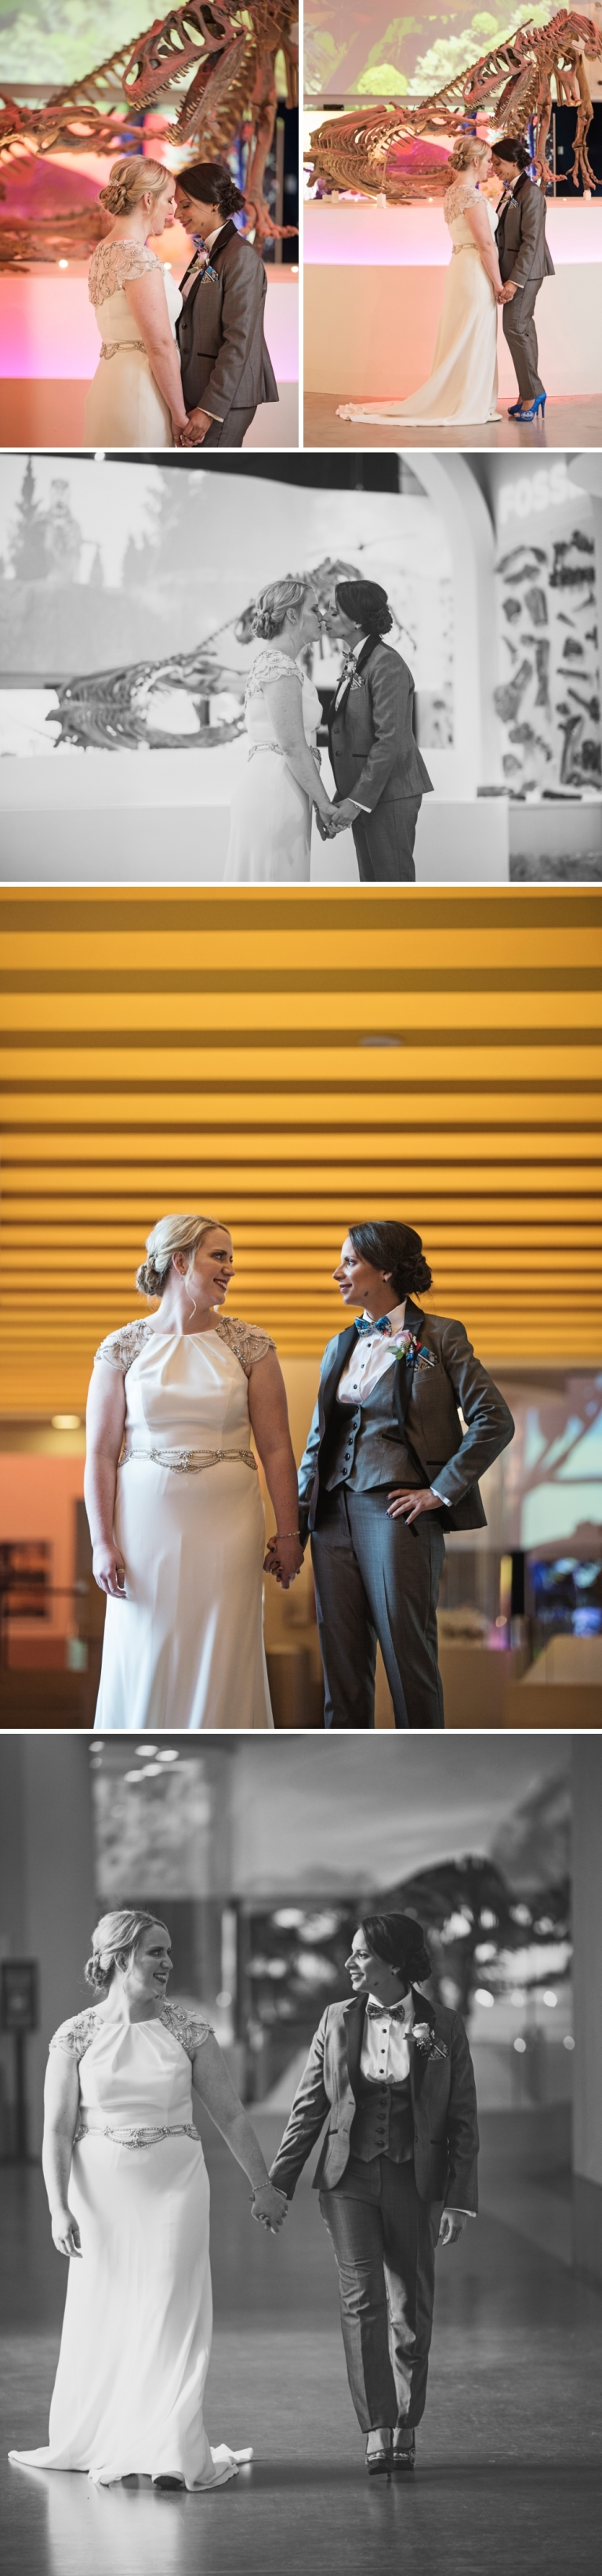 Wedding at Fort Worth Museum of Science and History